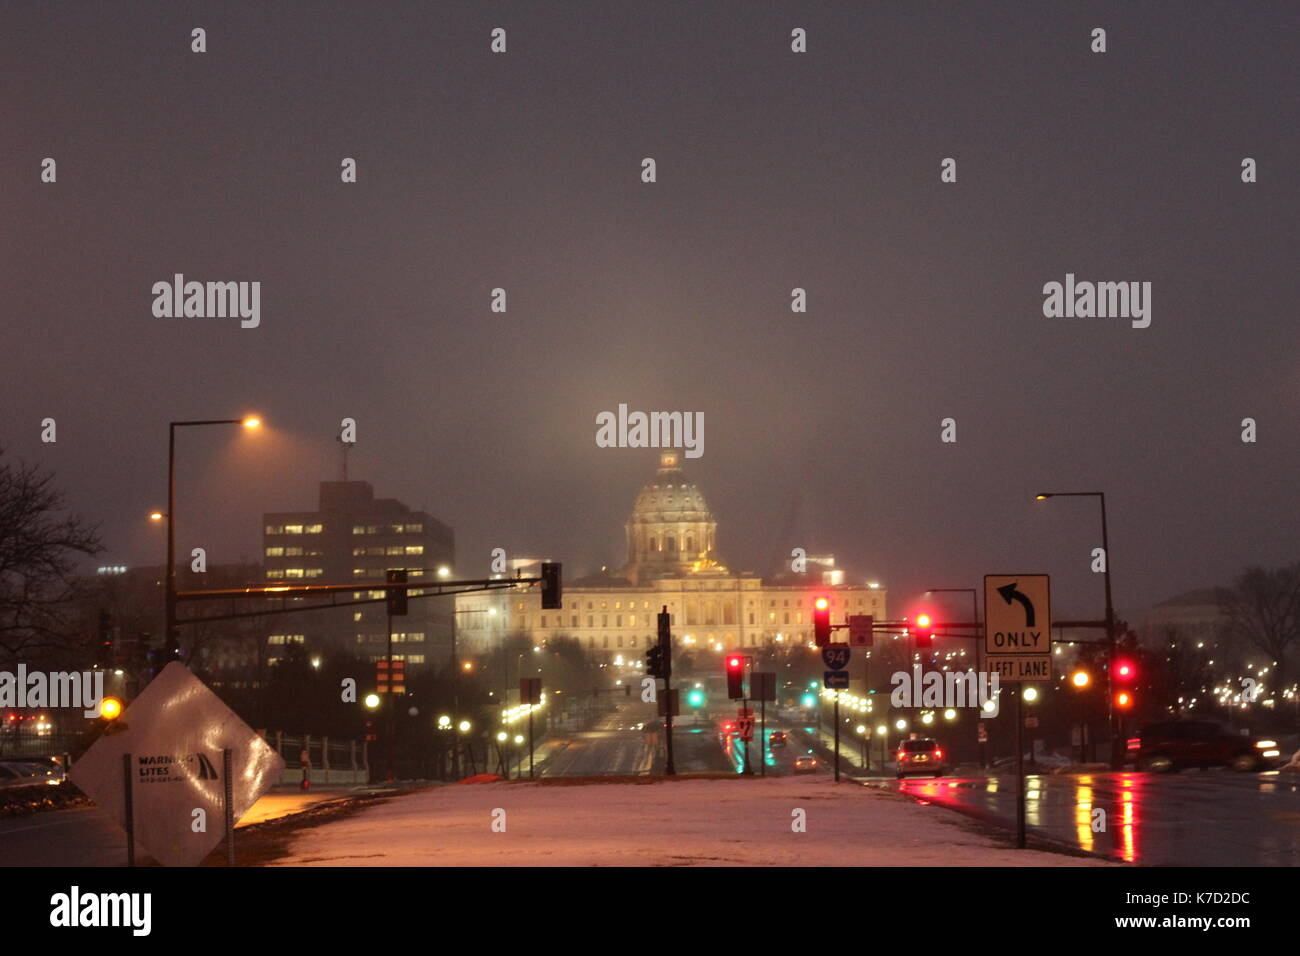 An image of the Capital of Minnesota during a misty morning. - Stock Image